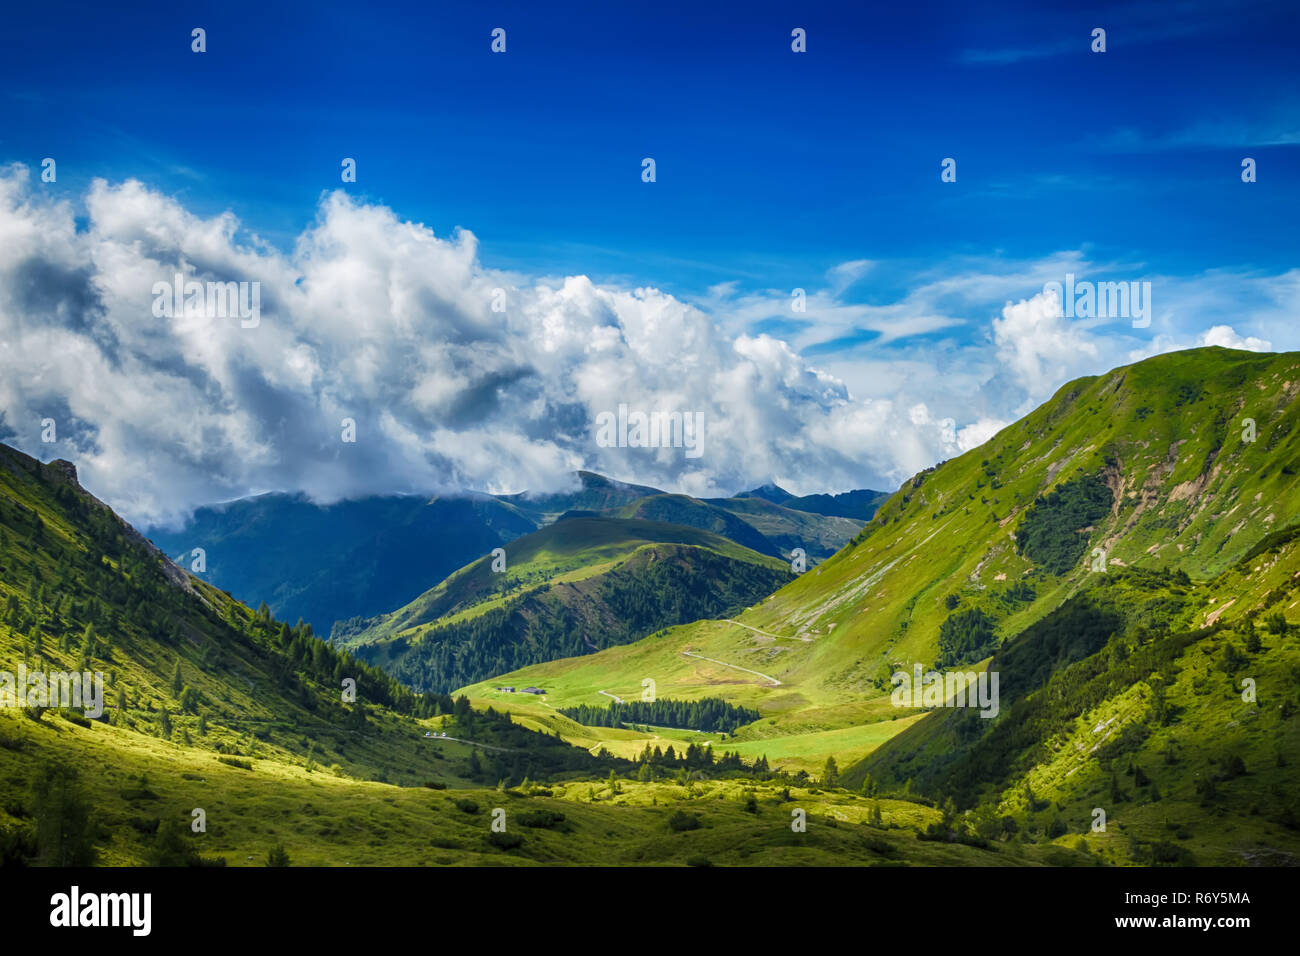 mountain landscape in bagolino,lombardy,italy - Stock Image